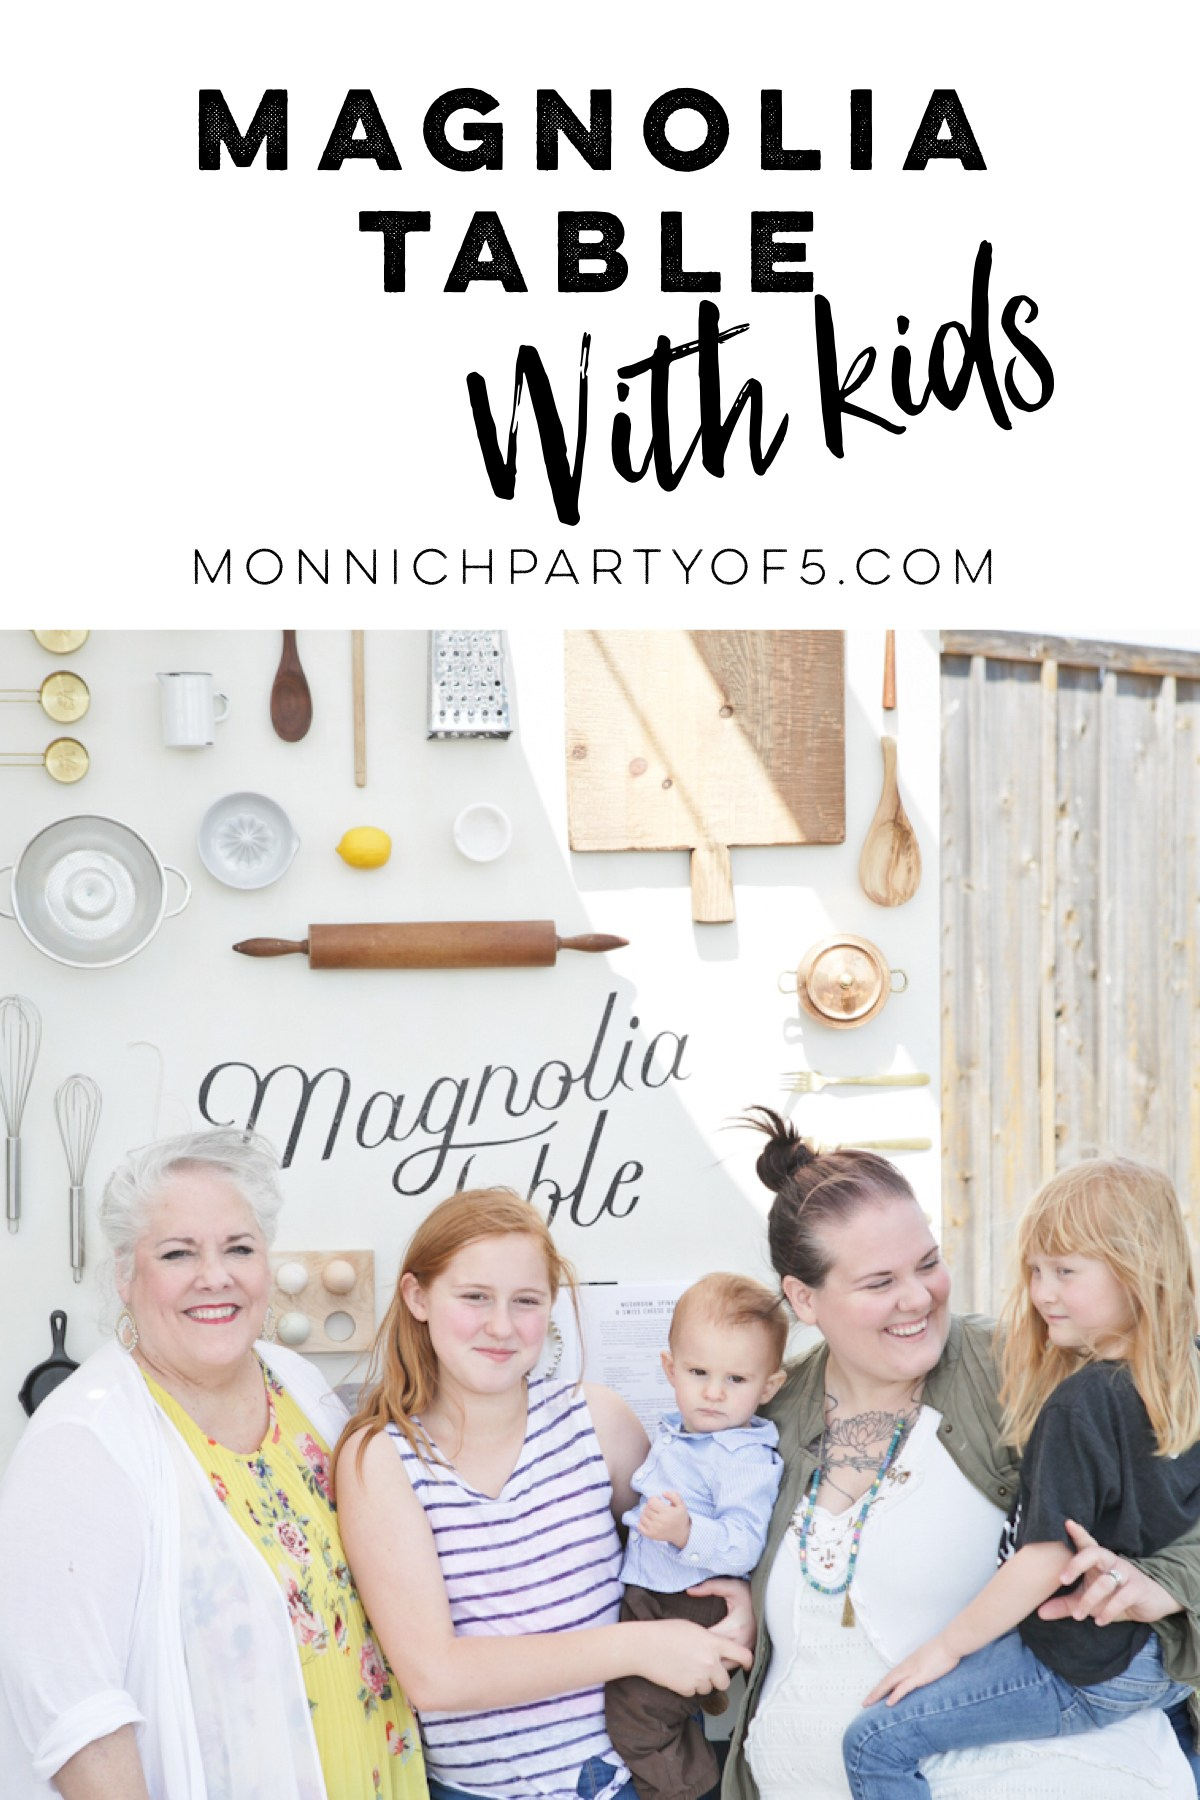 @monnichpartyof5's cover photo for 'Visit Magnolia Table with kids - Monnich Party of 5'